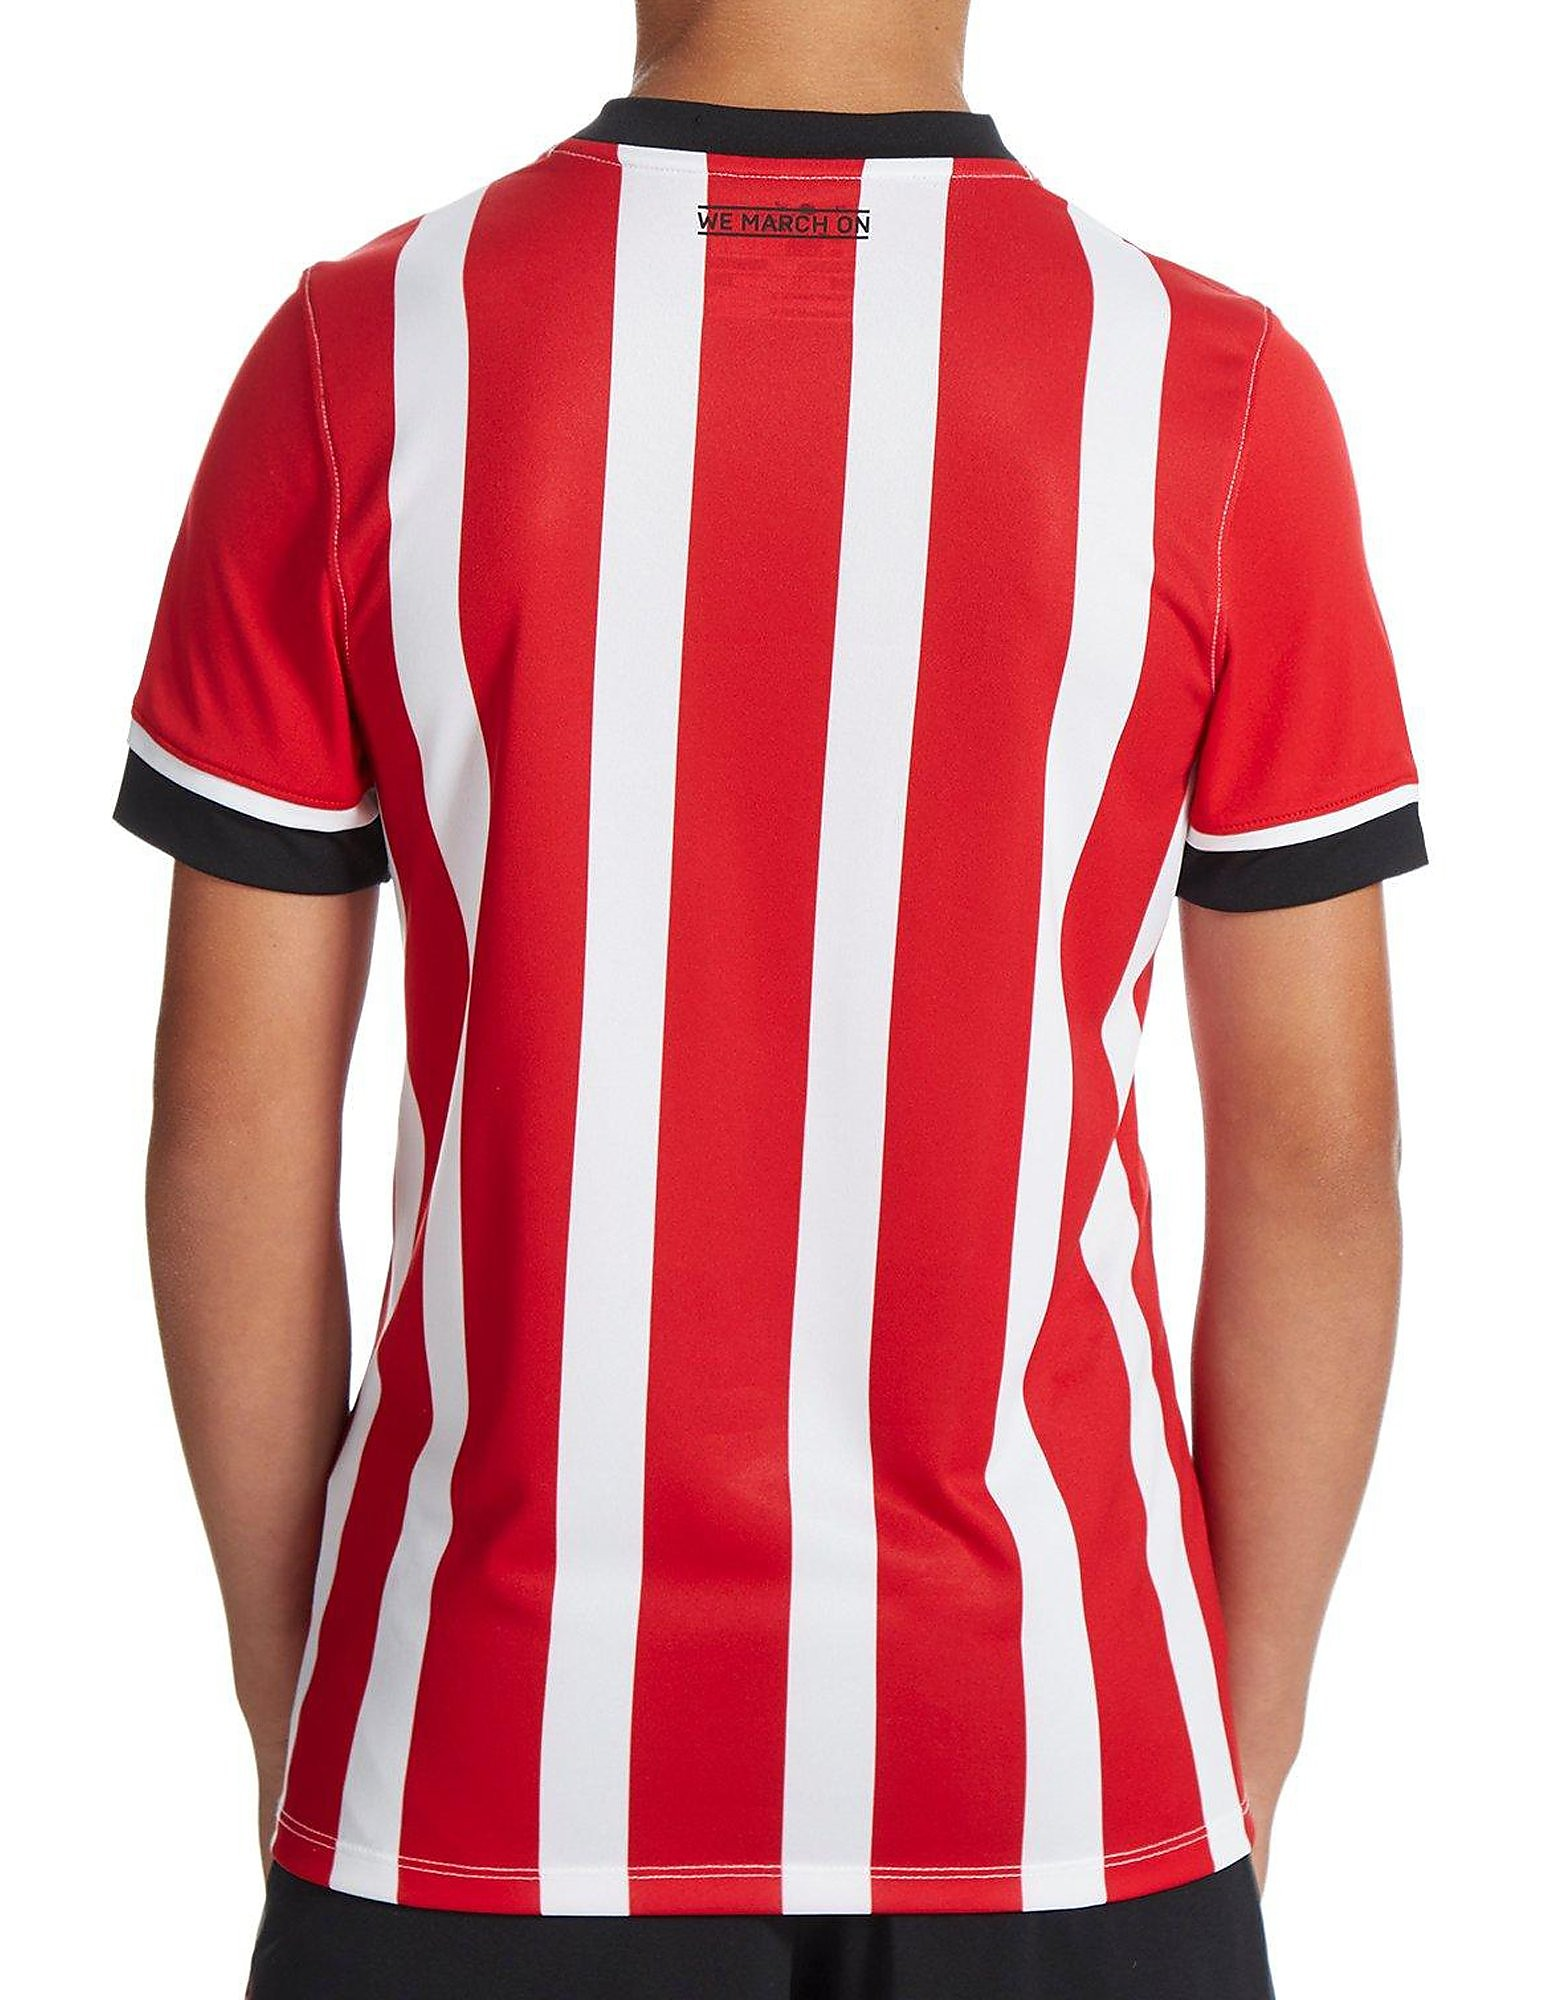 Under Armour Southampton FC 2016/17 Heimtrikot – Kinder